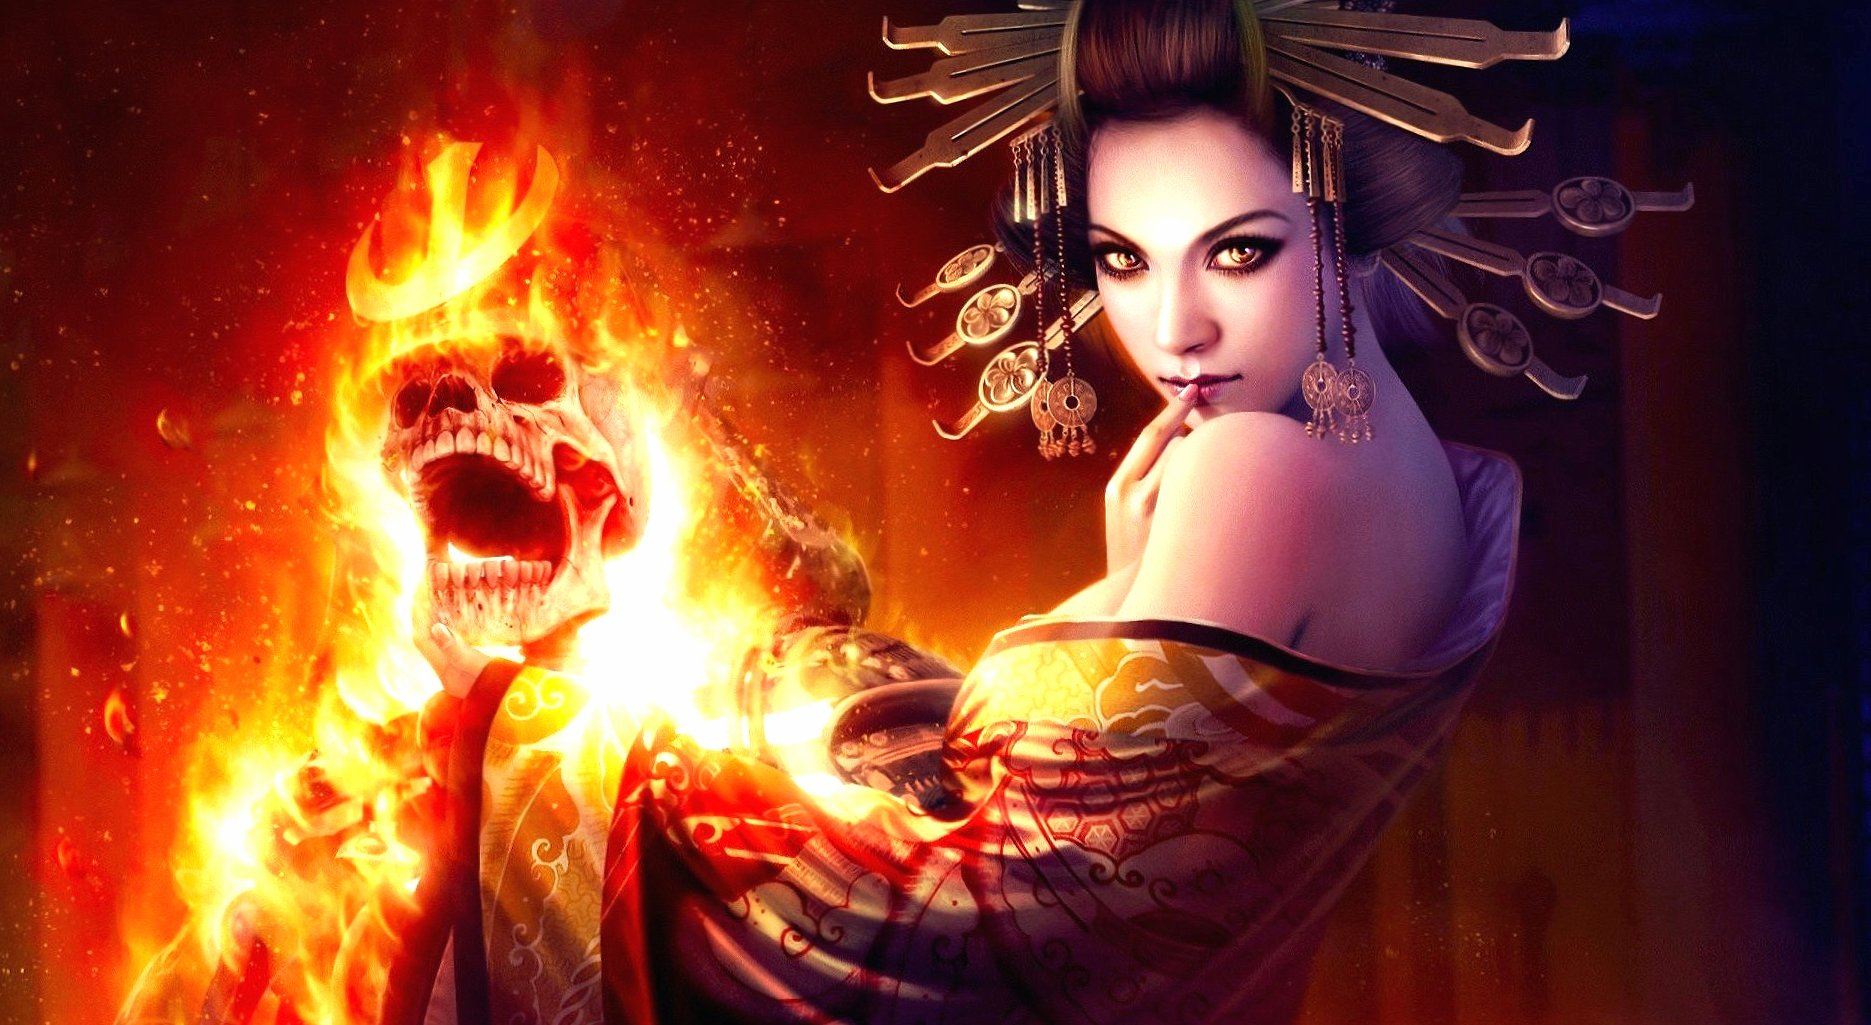 Amletic girl fire and fantasy wallpapers HD quality